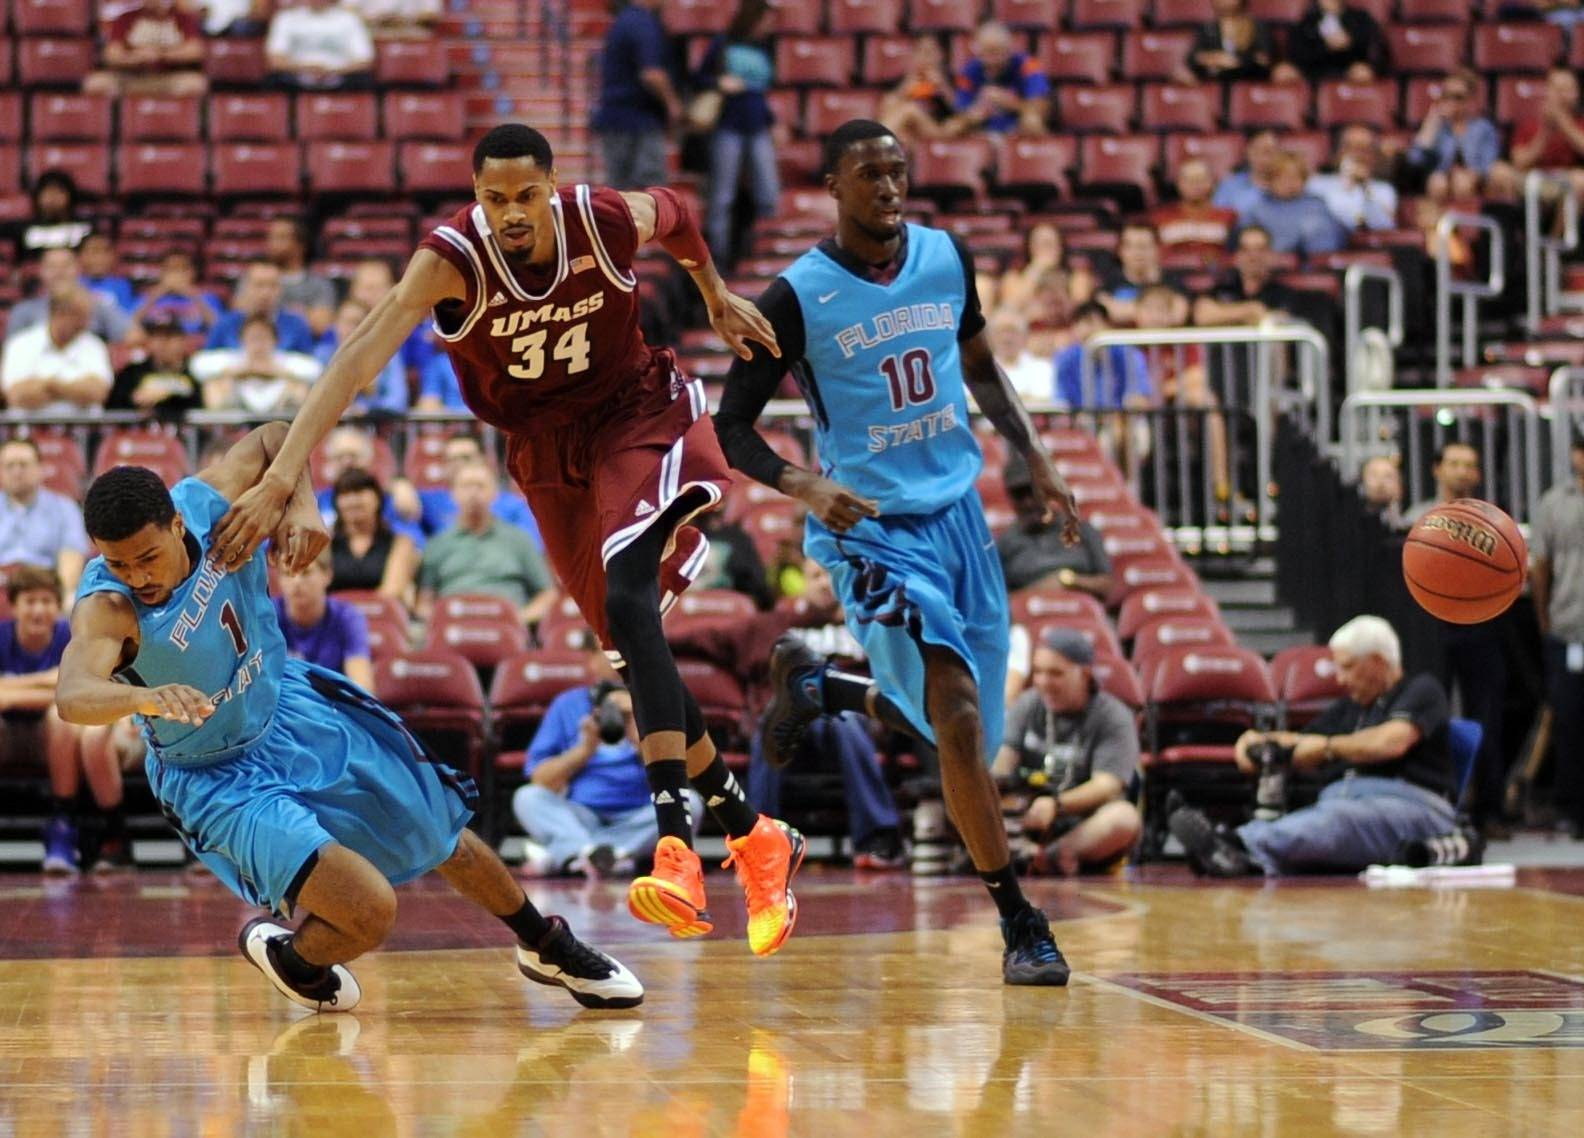 Dec 21, 2013; Sunrise, FL, USA; Florida State Seminoles guard Devon Bookert (left) and Massachusetts Minutemen forward Raphiael Putney (center) chase a loose ball during the first half at BB&T Center. Mandatory Credit: Steve Mitchell-USA TODAY Sports